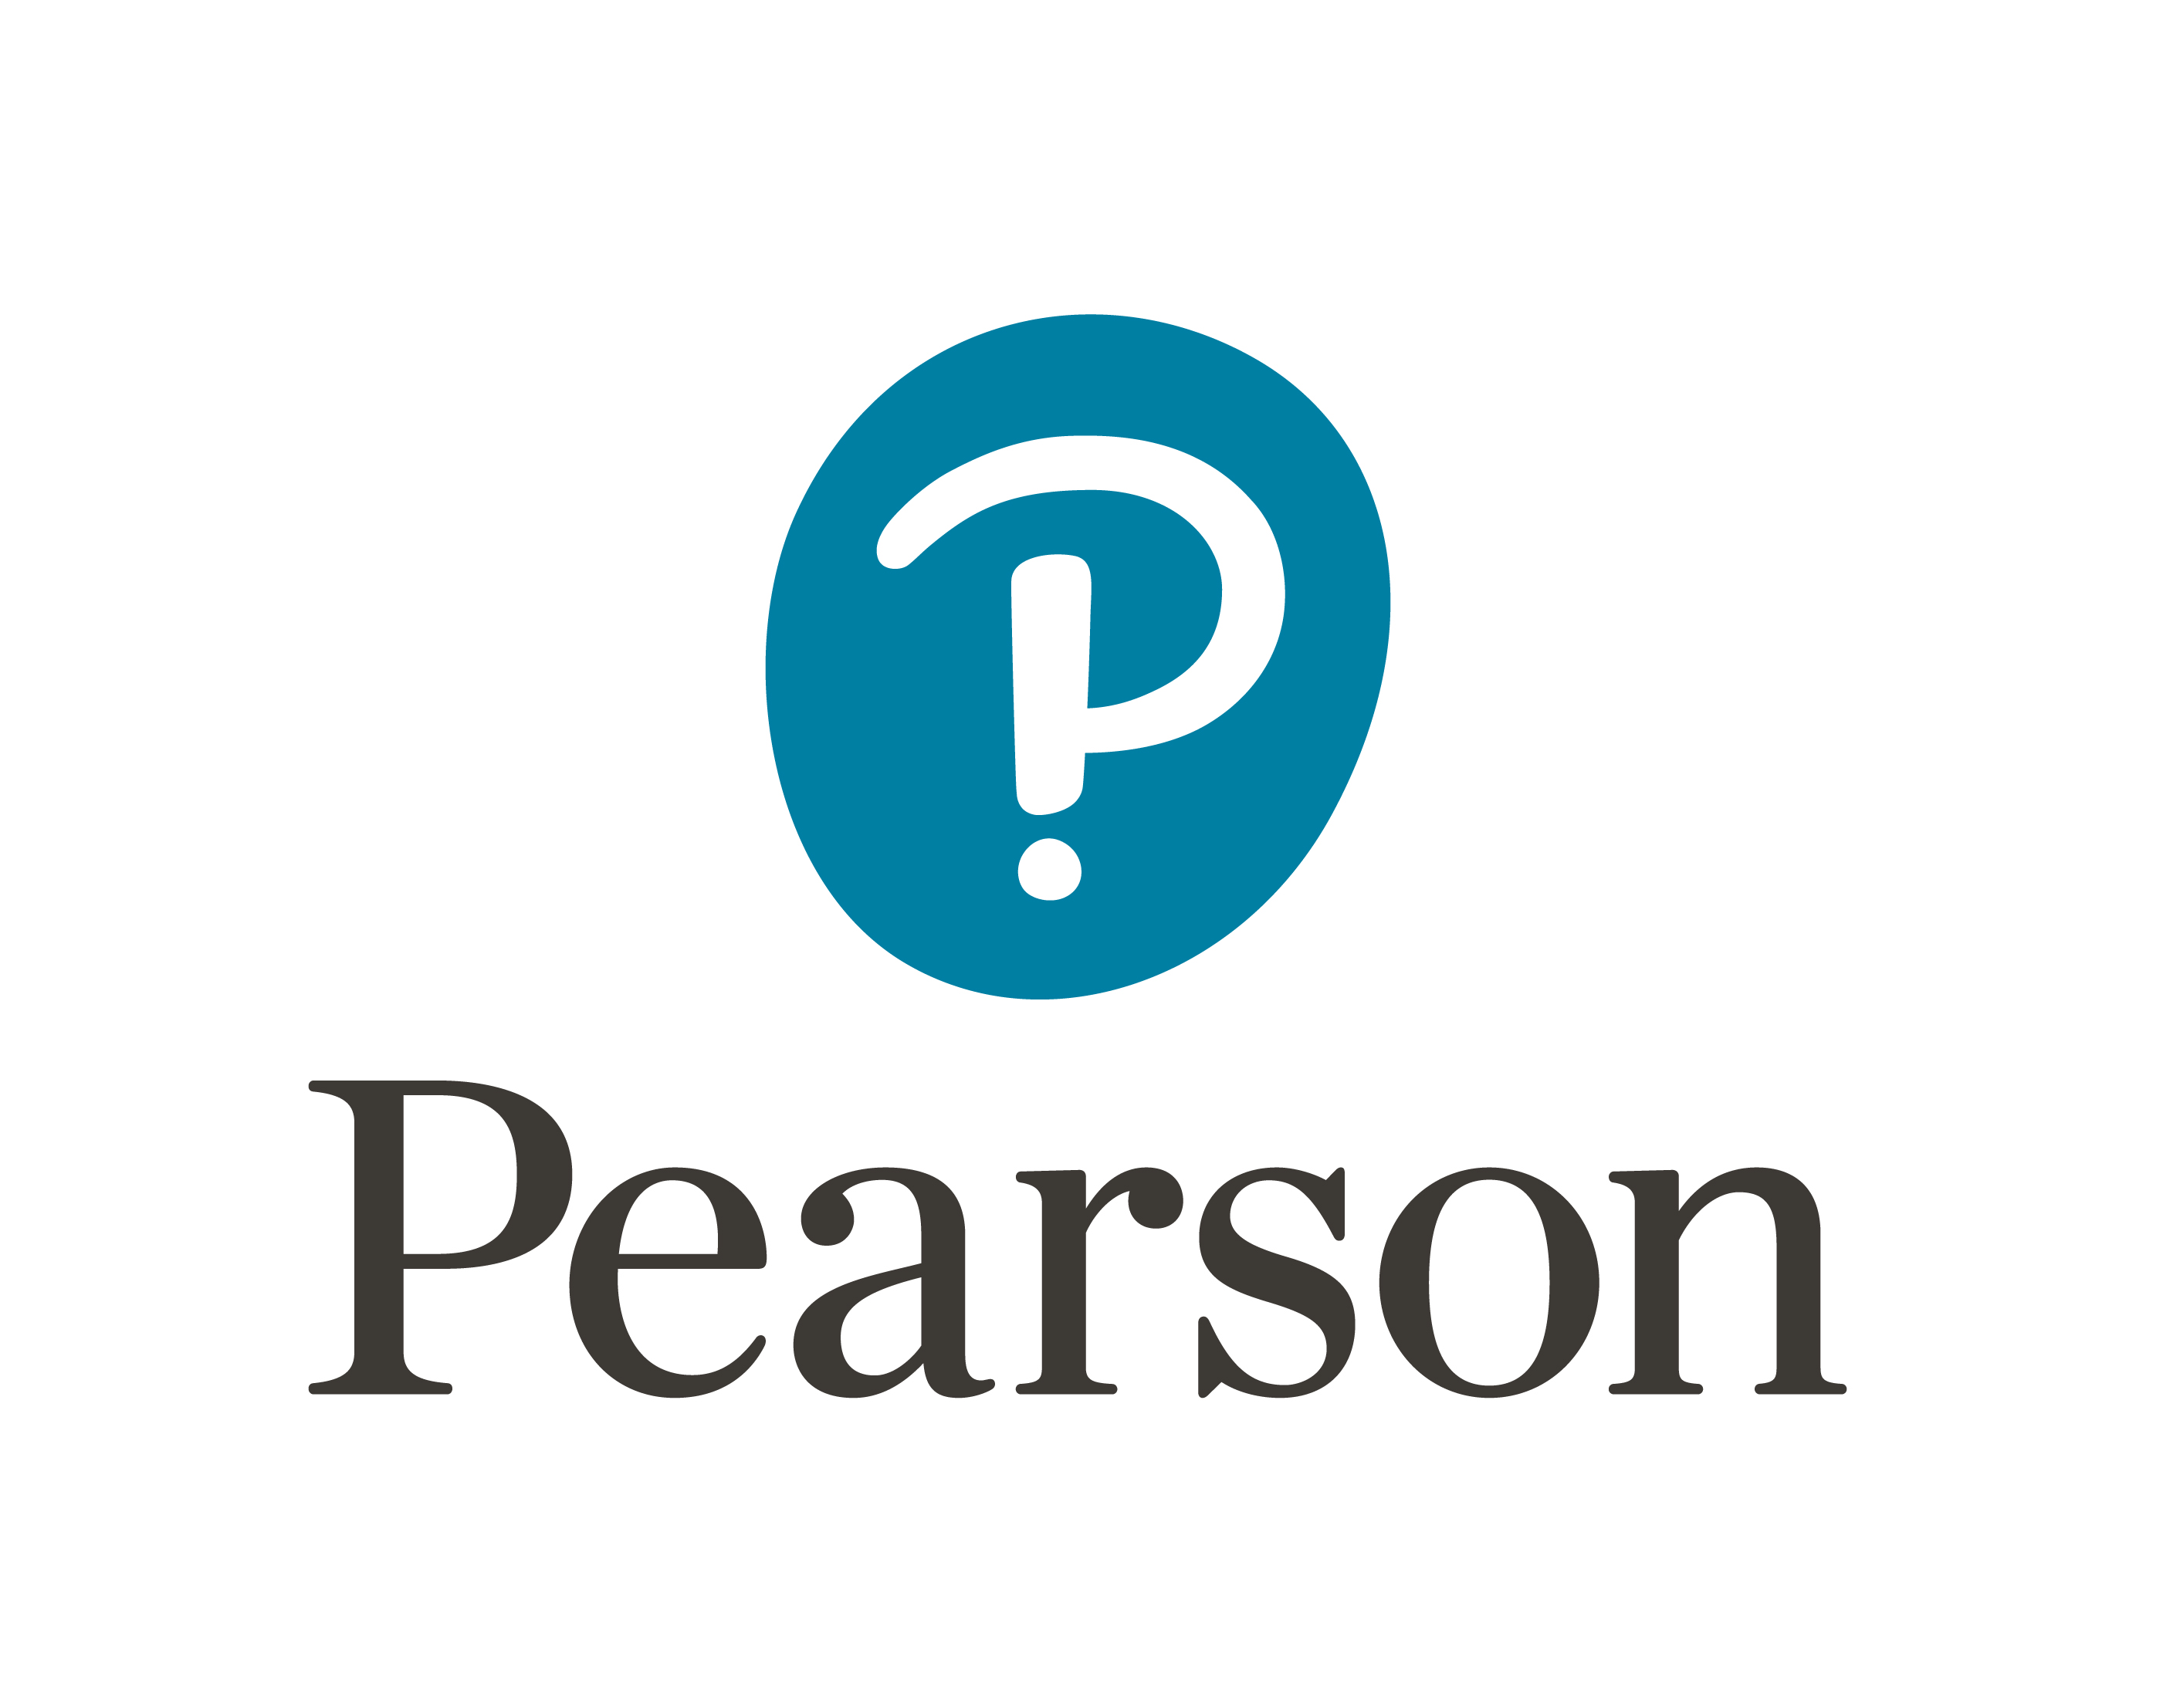 Pearson Team leader Supervisor Authentication and Certification Declaration Form